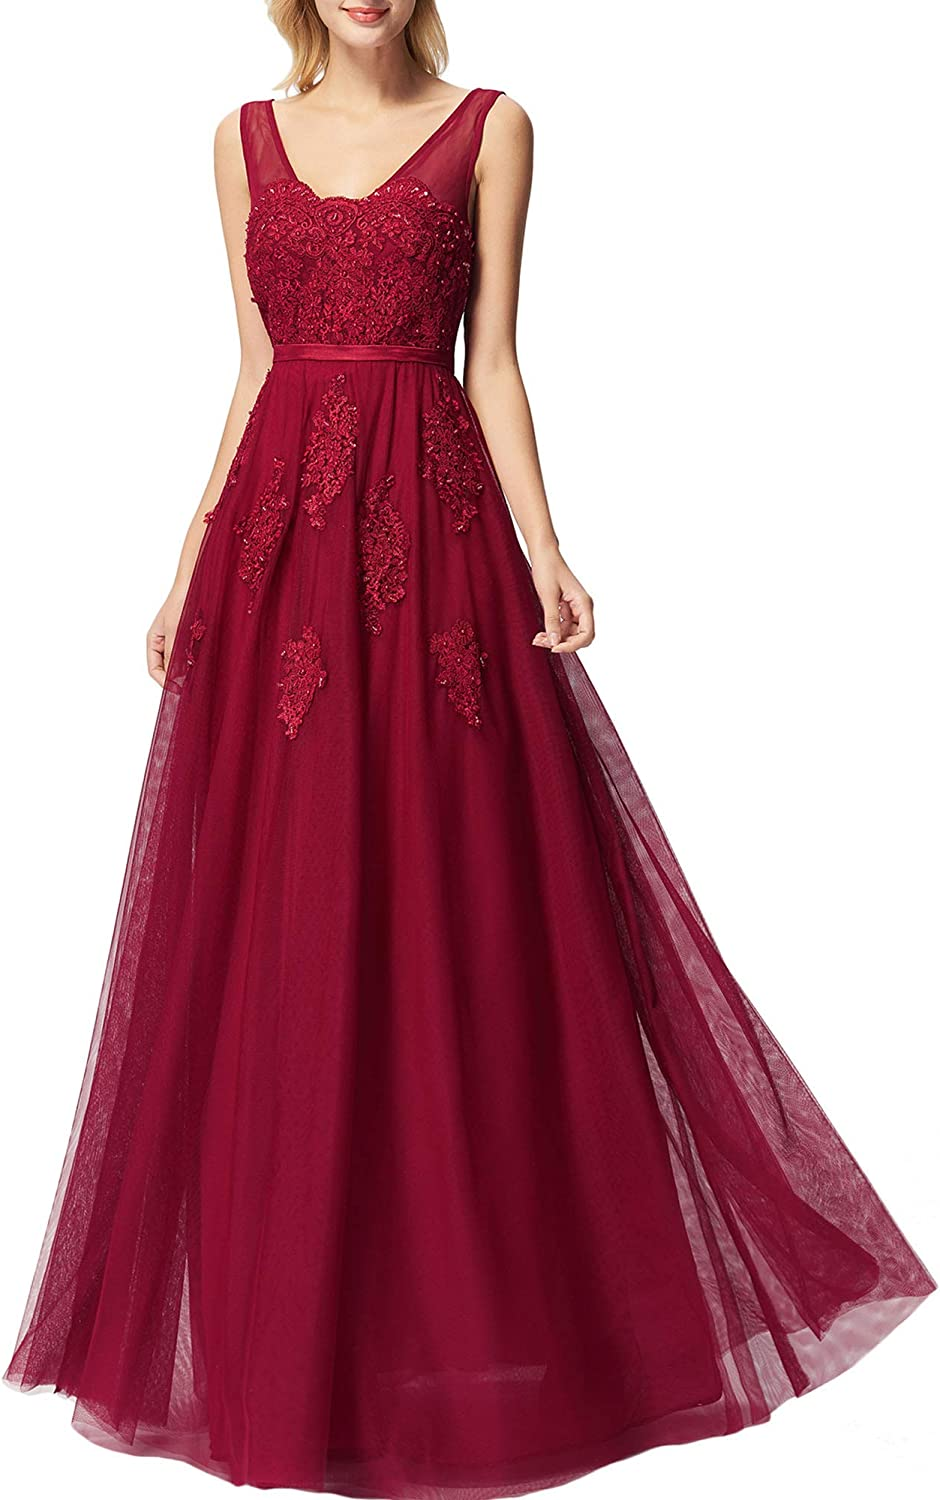 Promworld Women's Lace Applique Prom Dress Tulle Double V Neck Evening Gowns Formal Dresses